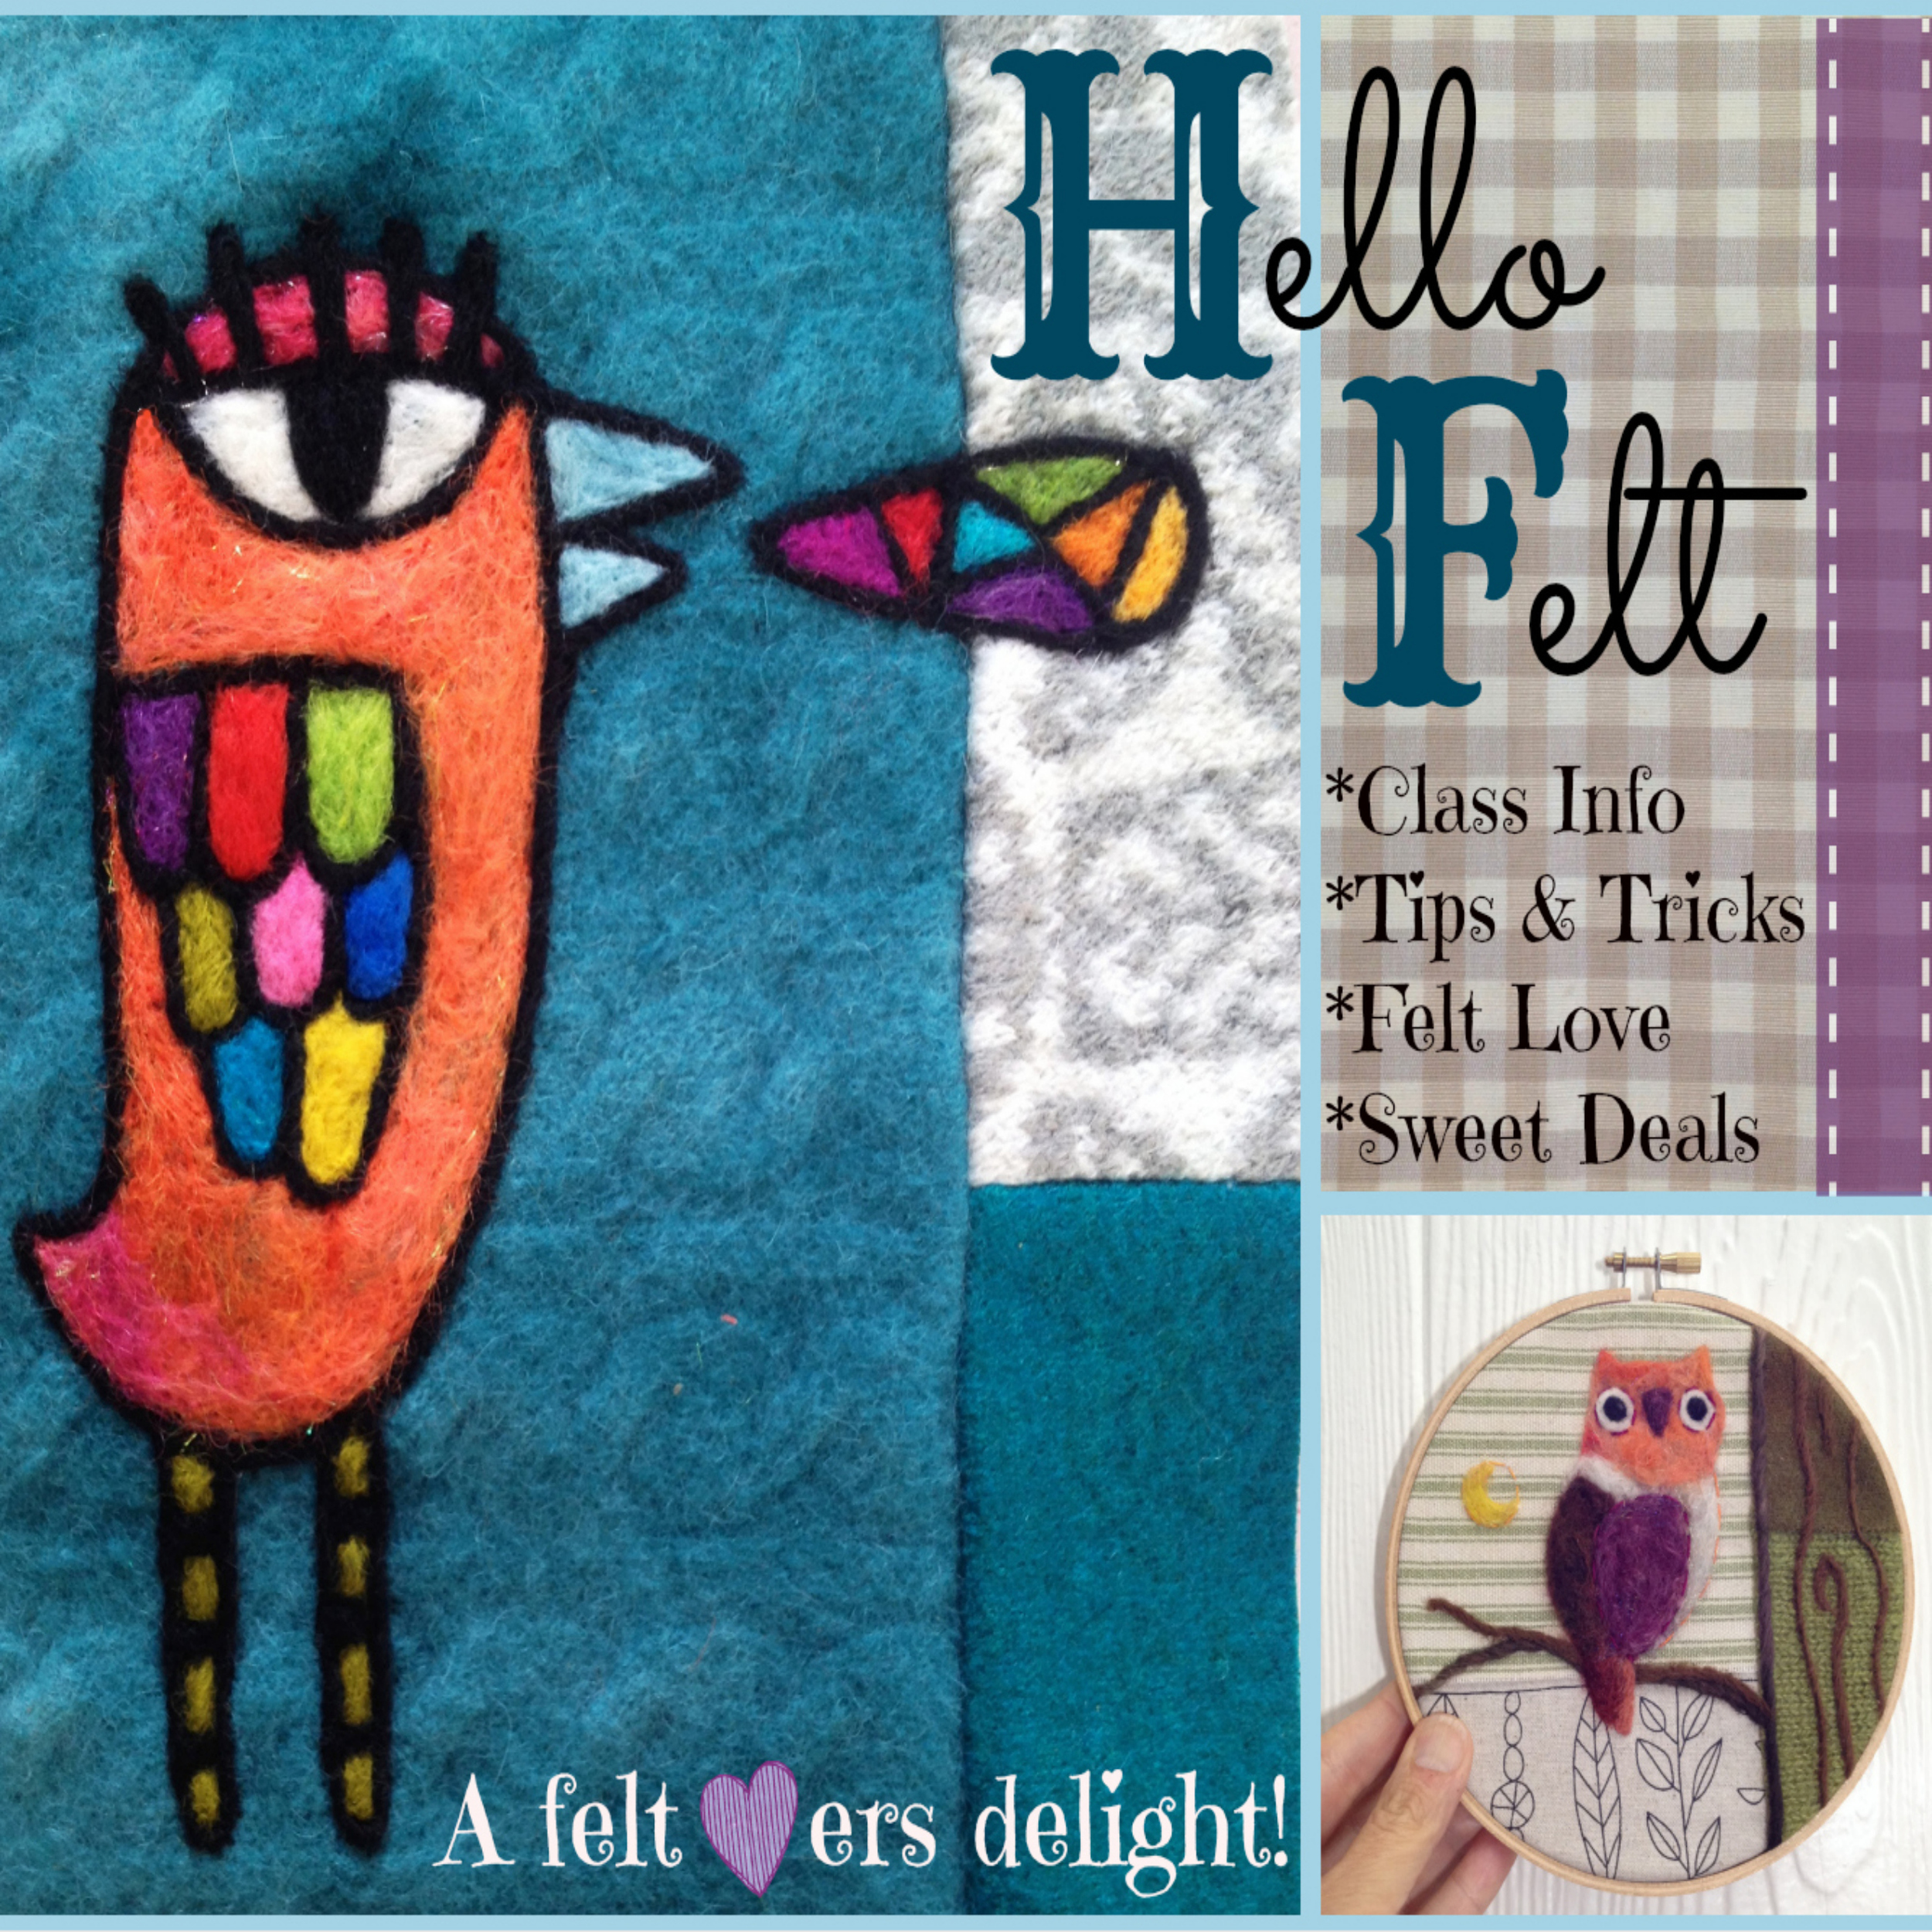 CLICK ON THE IMAGE ABOVE TO ACCESS THE HELLO FELT PAGE. Our Online Class adventure  Hello Felt! has launched and all classes are now live!Find out more by clicking on the picture above to be directed to the Hello Felt page,where you can also sign up to be alerted to details about the class,discounts, class schedule, and more! Start your needle felting adventure today!